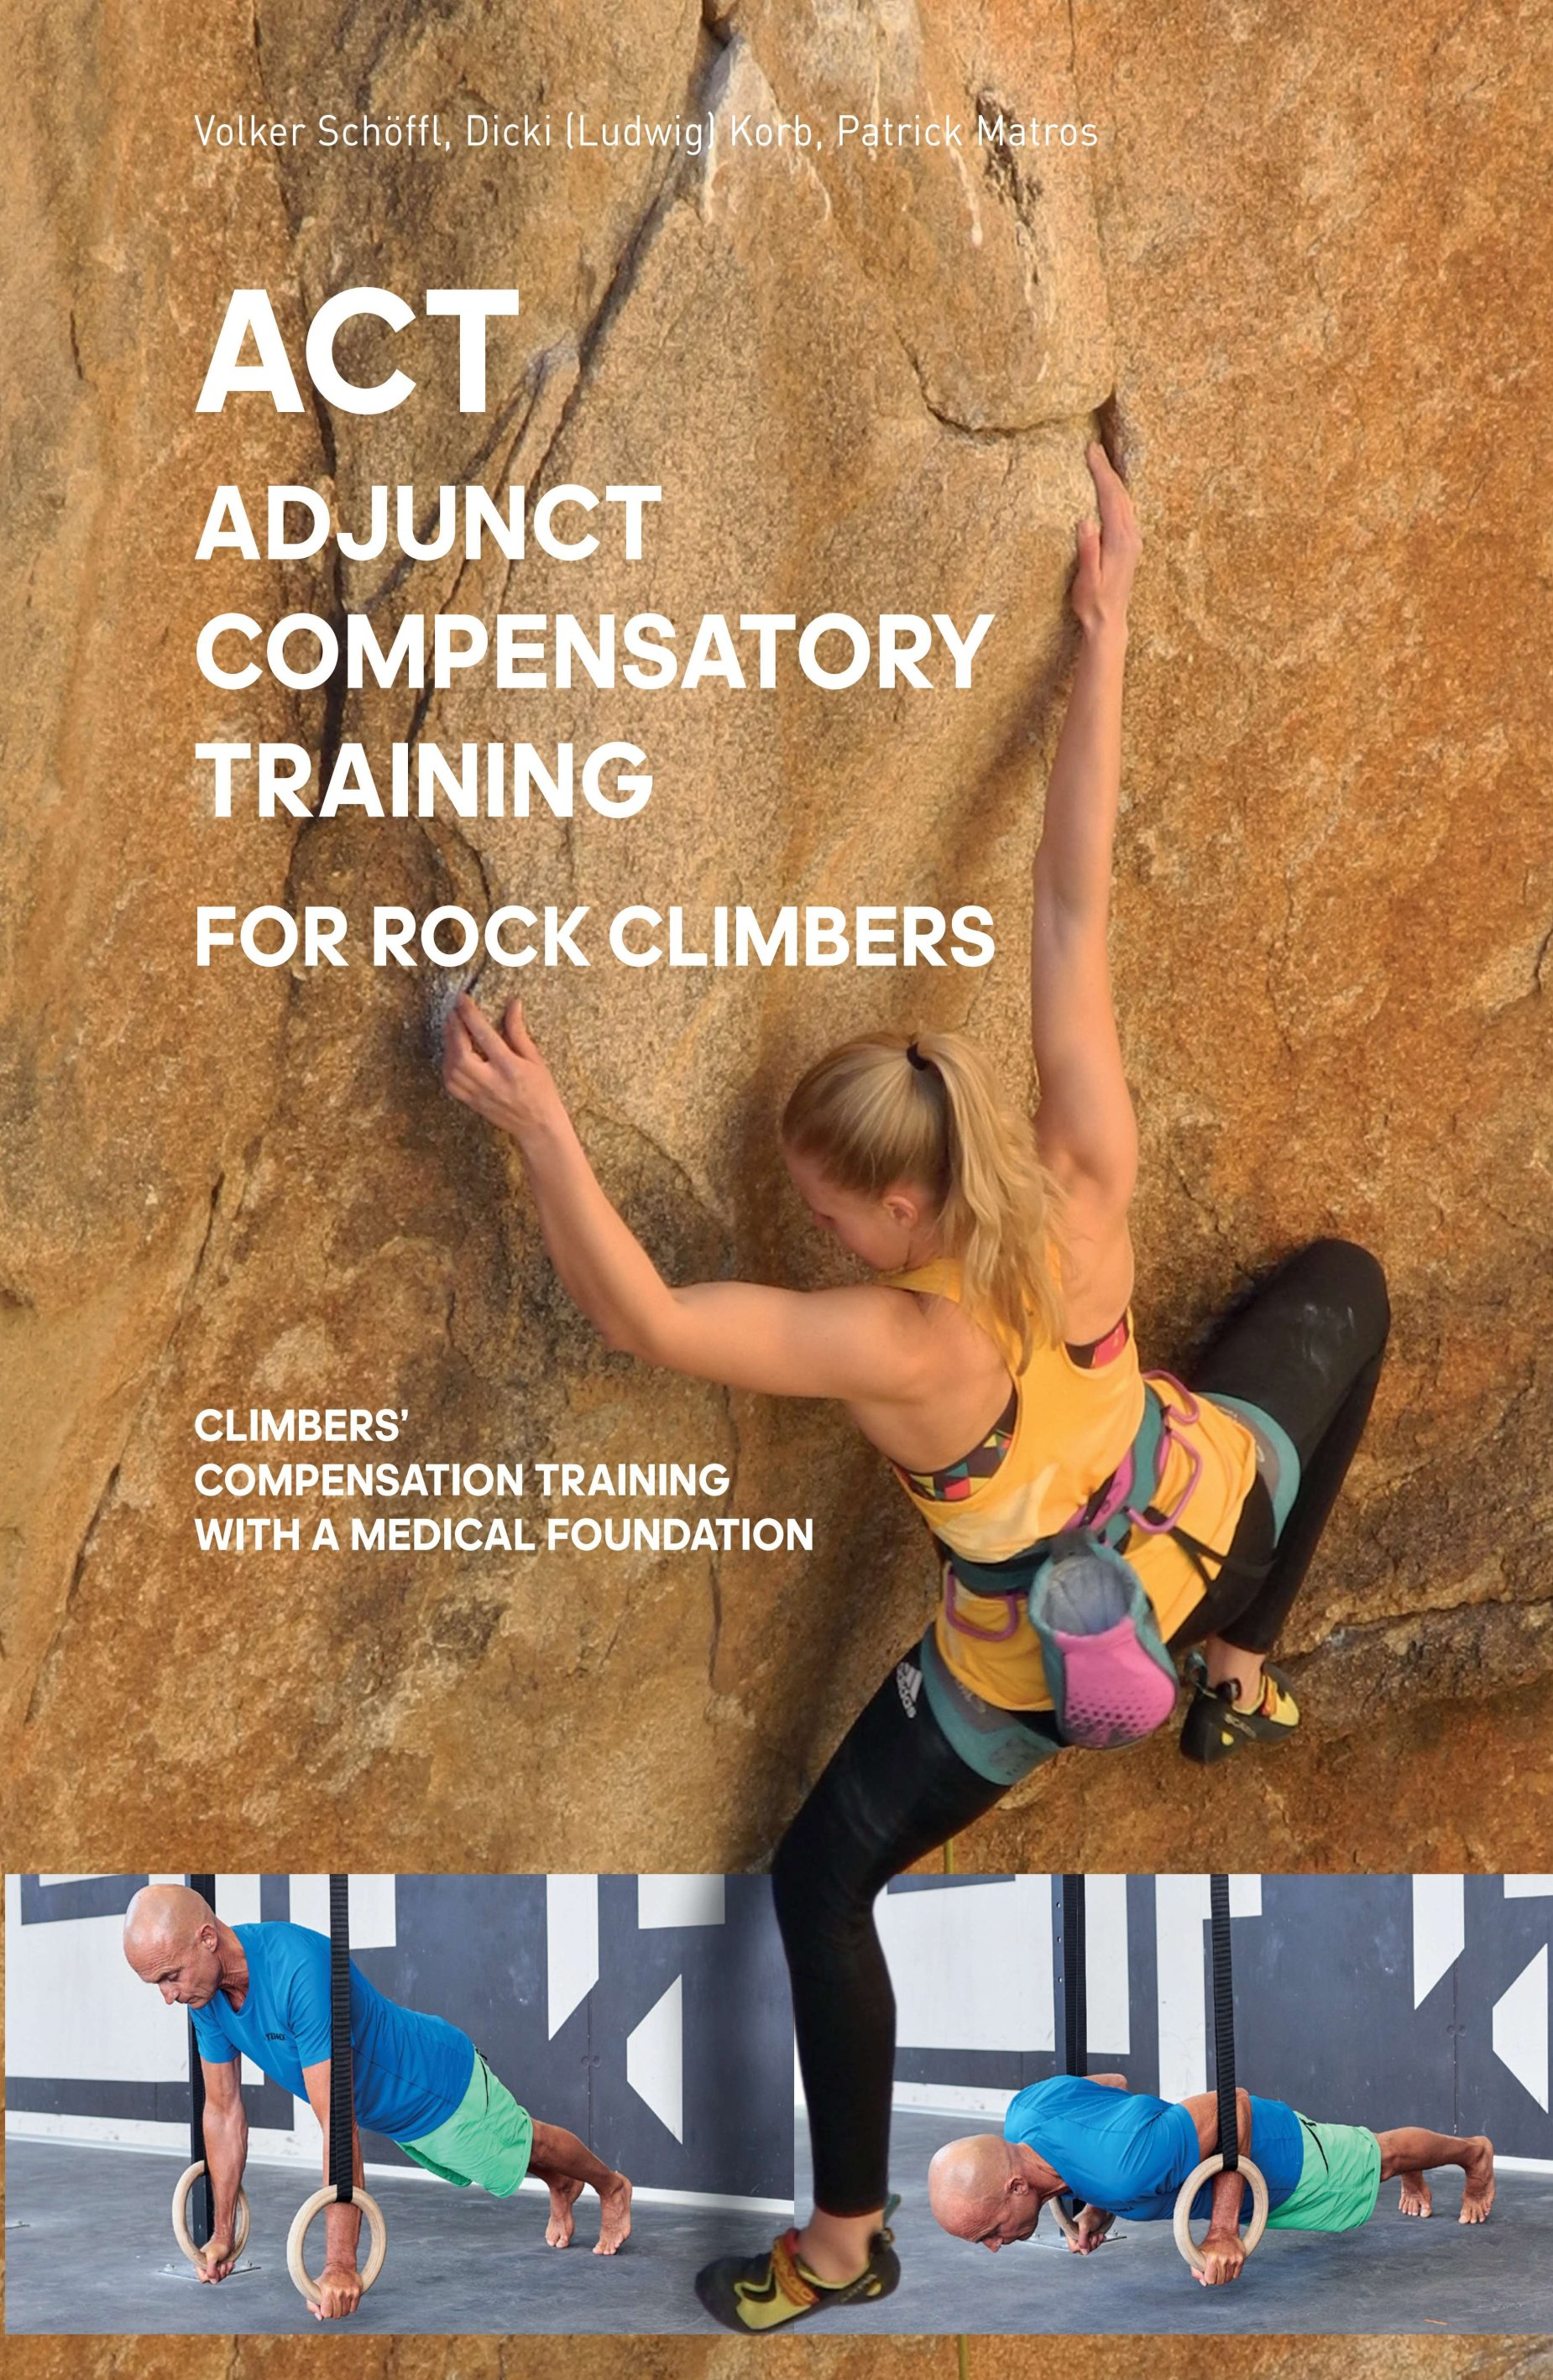 ACT - Adjunct compensatory Training for rock climbers - climbers' compensation training with a medical foundation